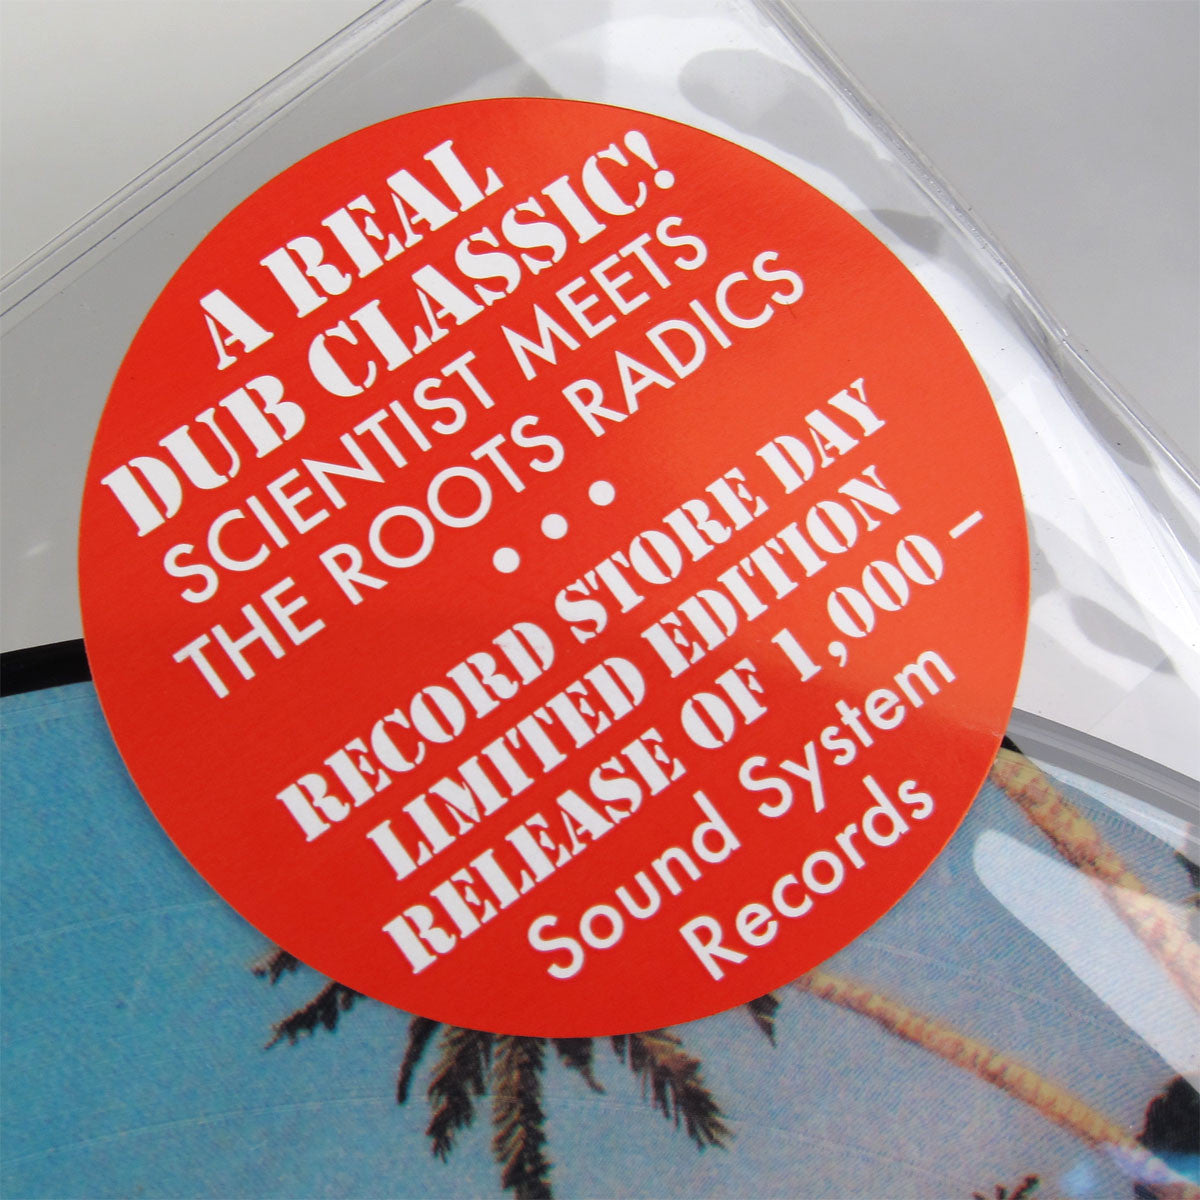 Roots Radics: Scientist Meets Roots Radics Pic Disc Vinyl LP (Record Store Day 2014) 2